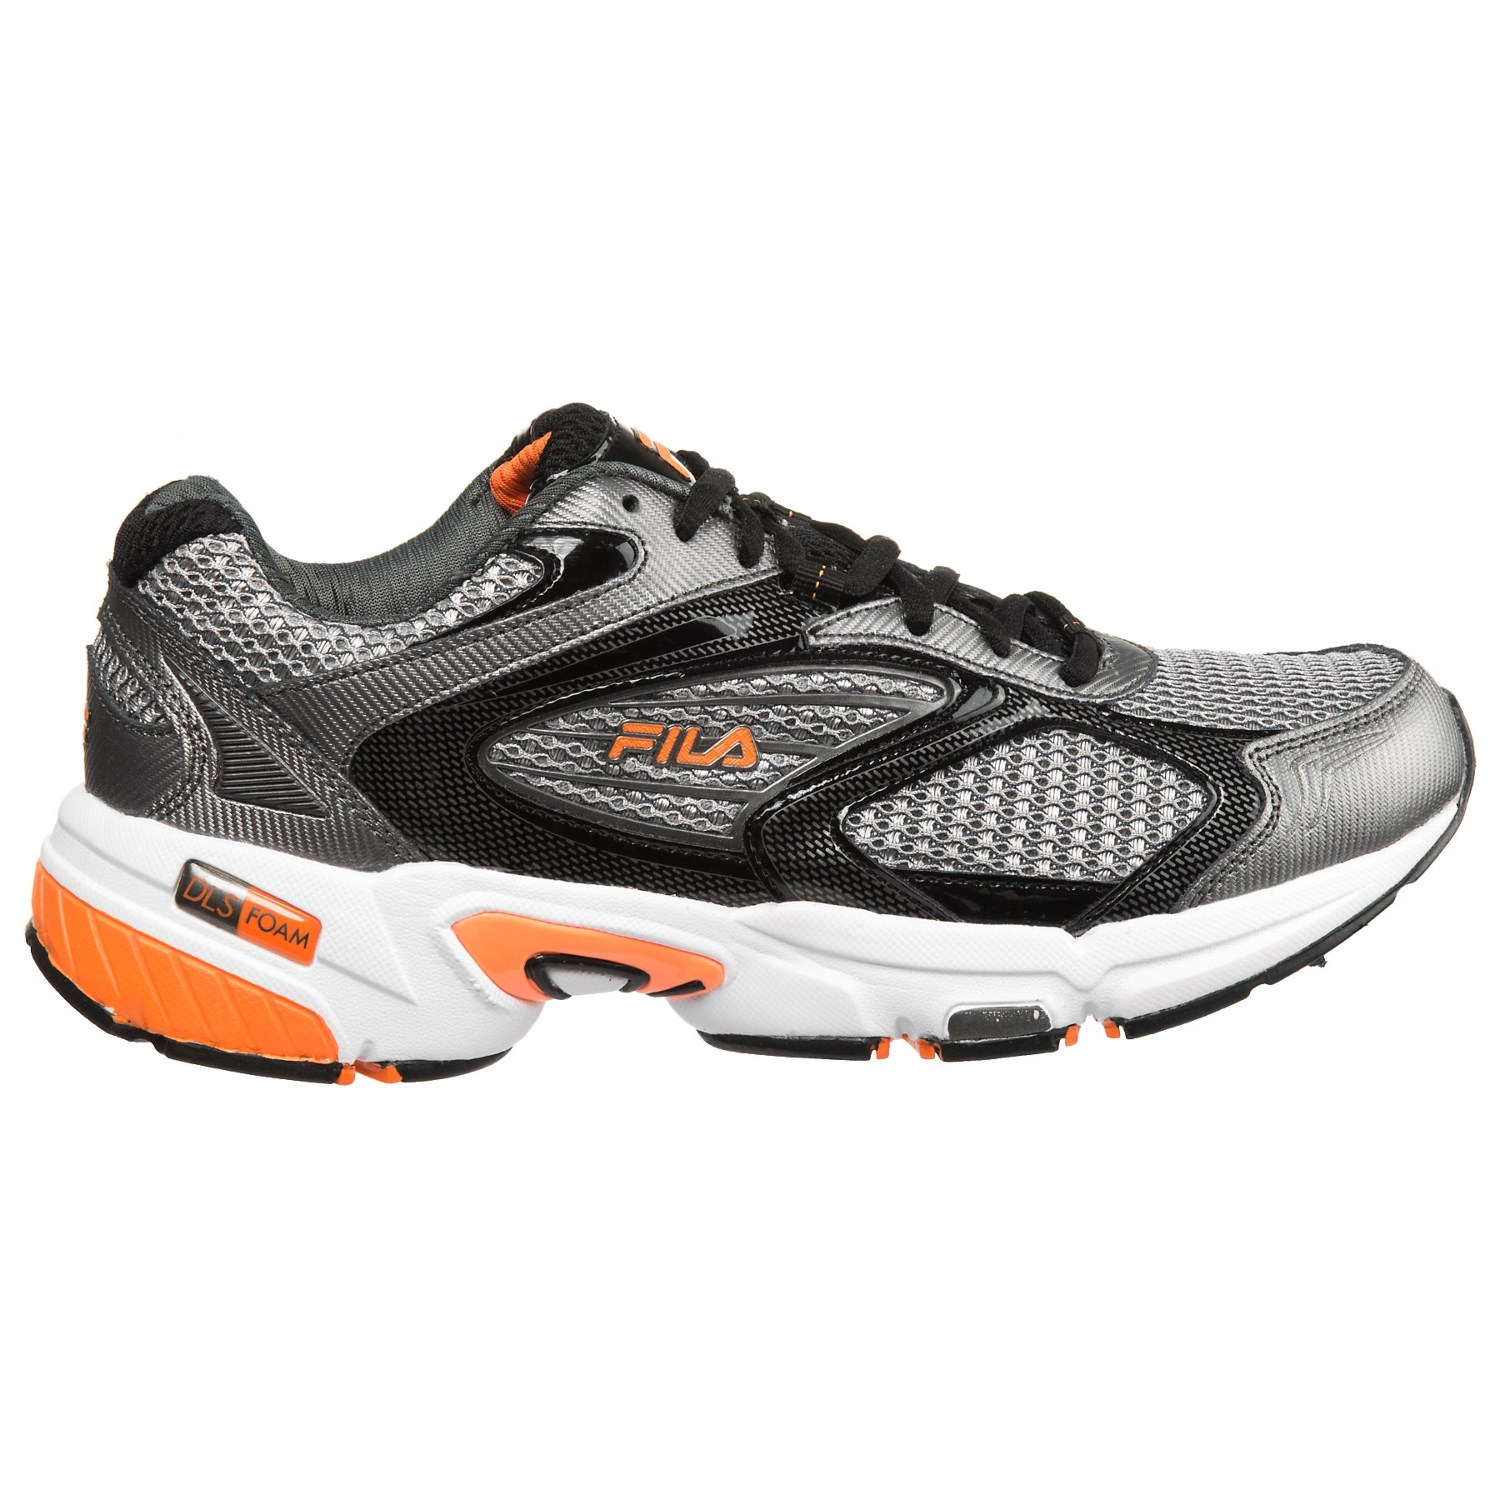 Fila Running Shoes Review Philippines